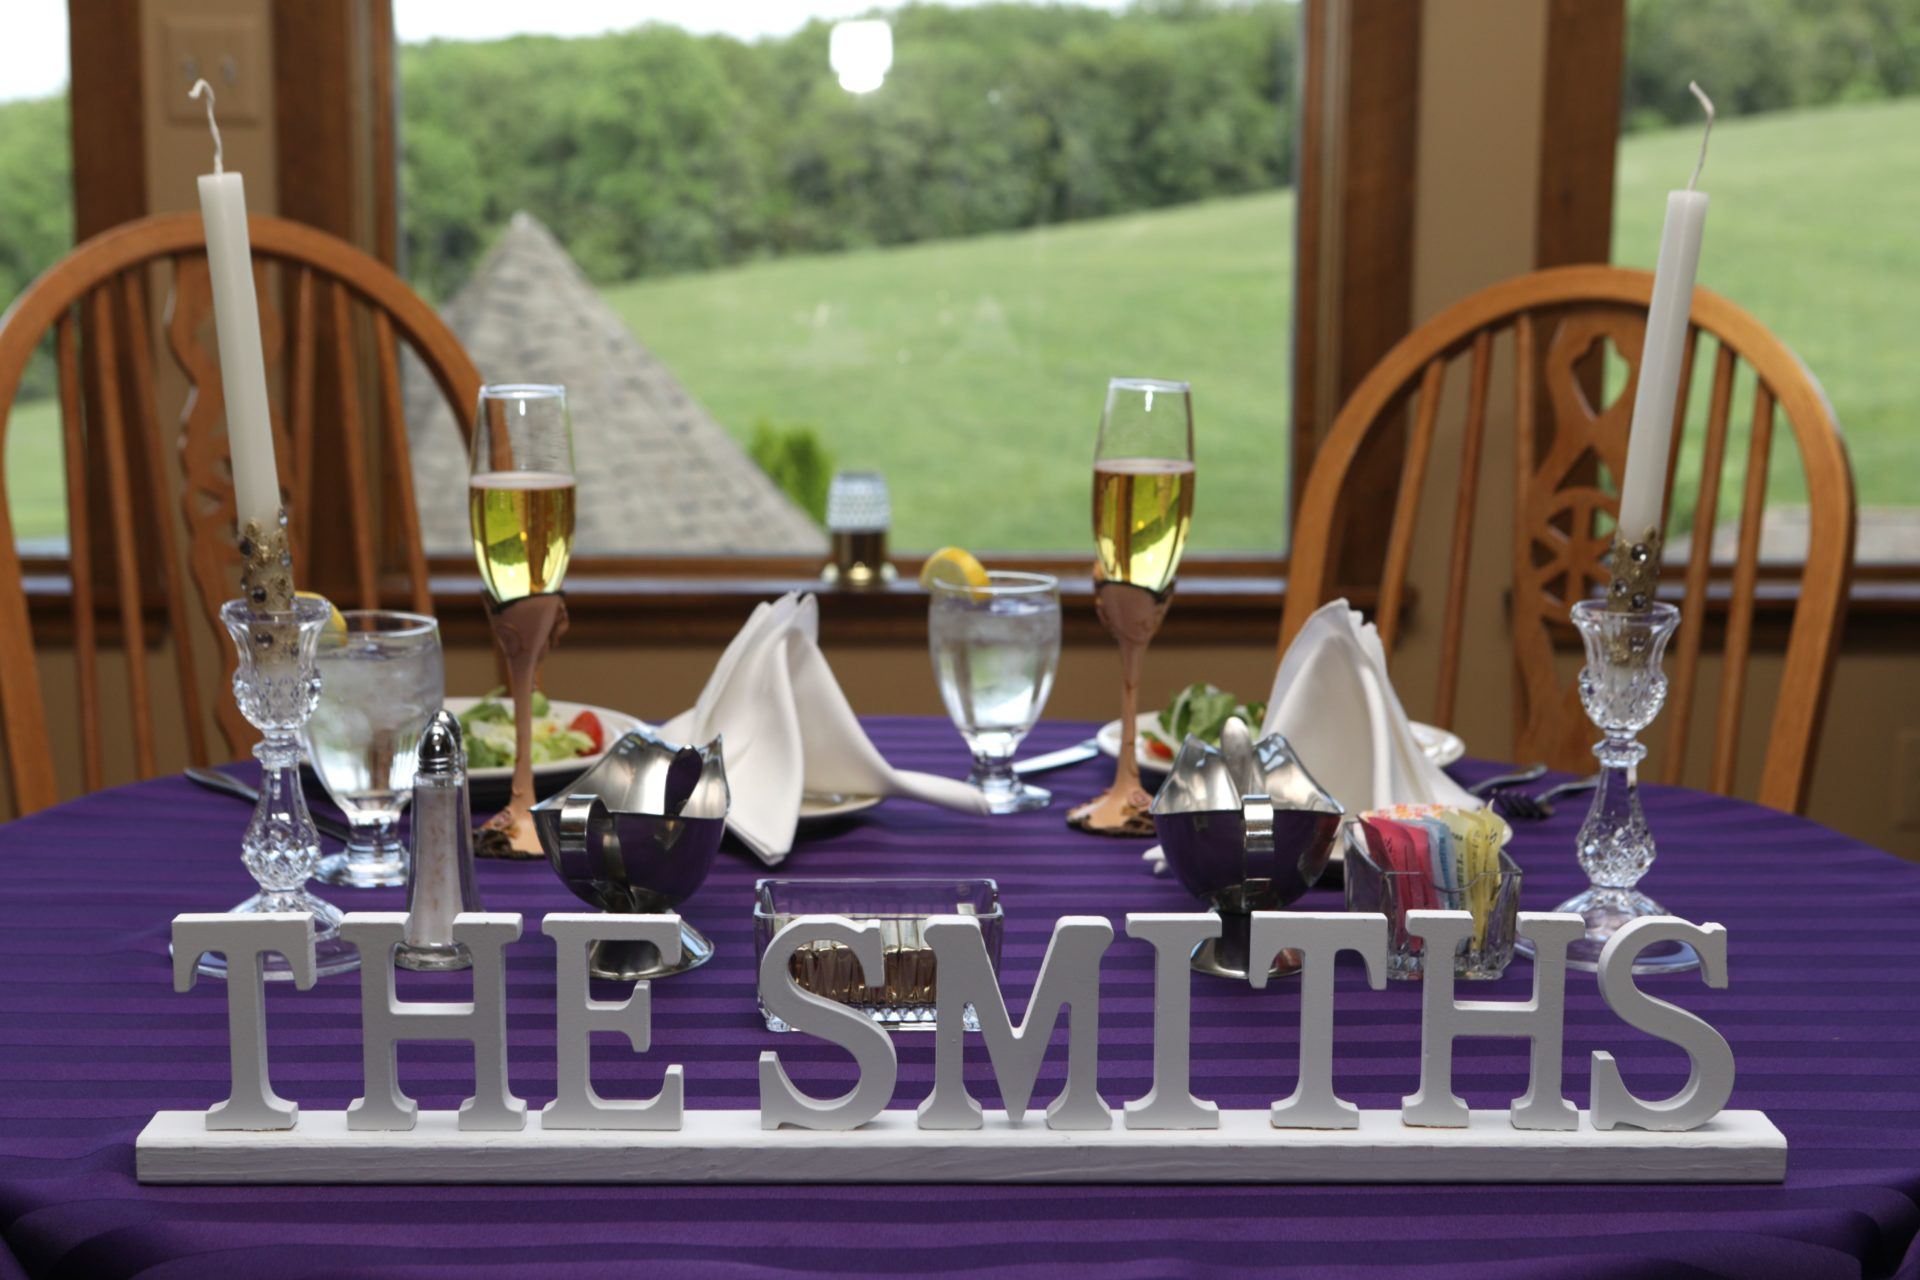 Head table decoration of couples new last name during tea party theme wedding in Frederick